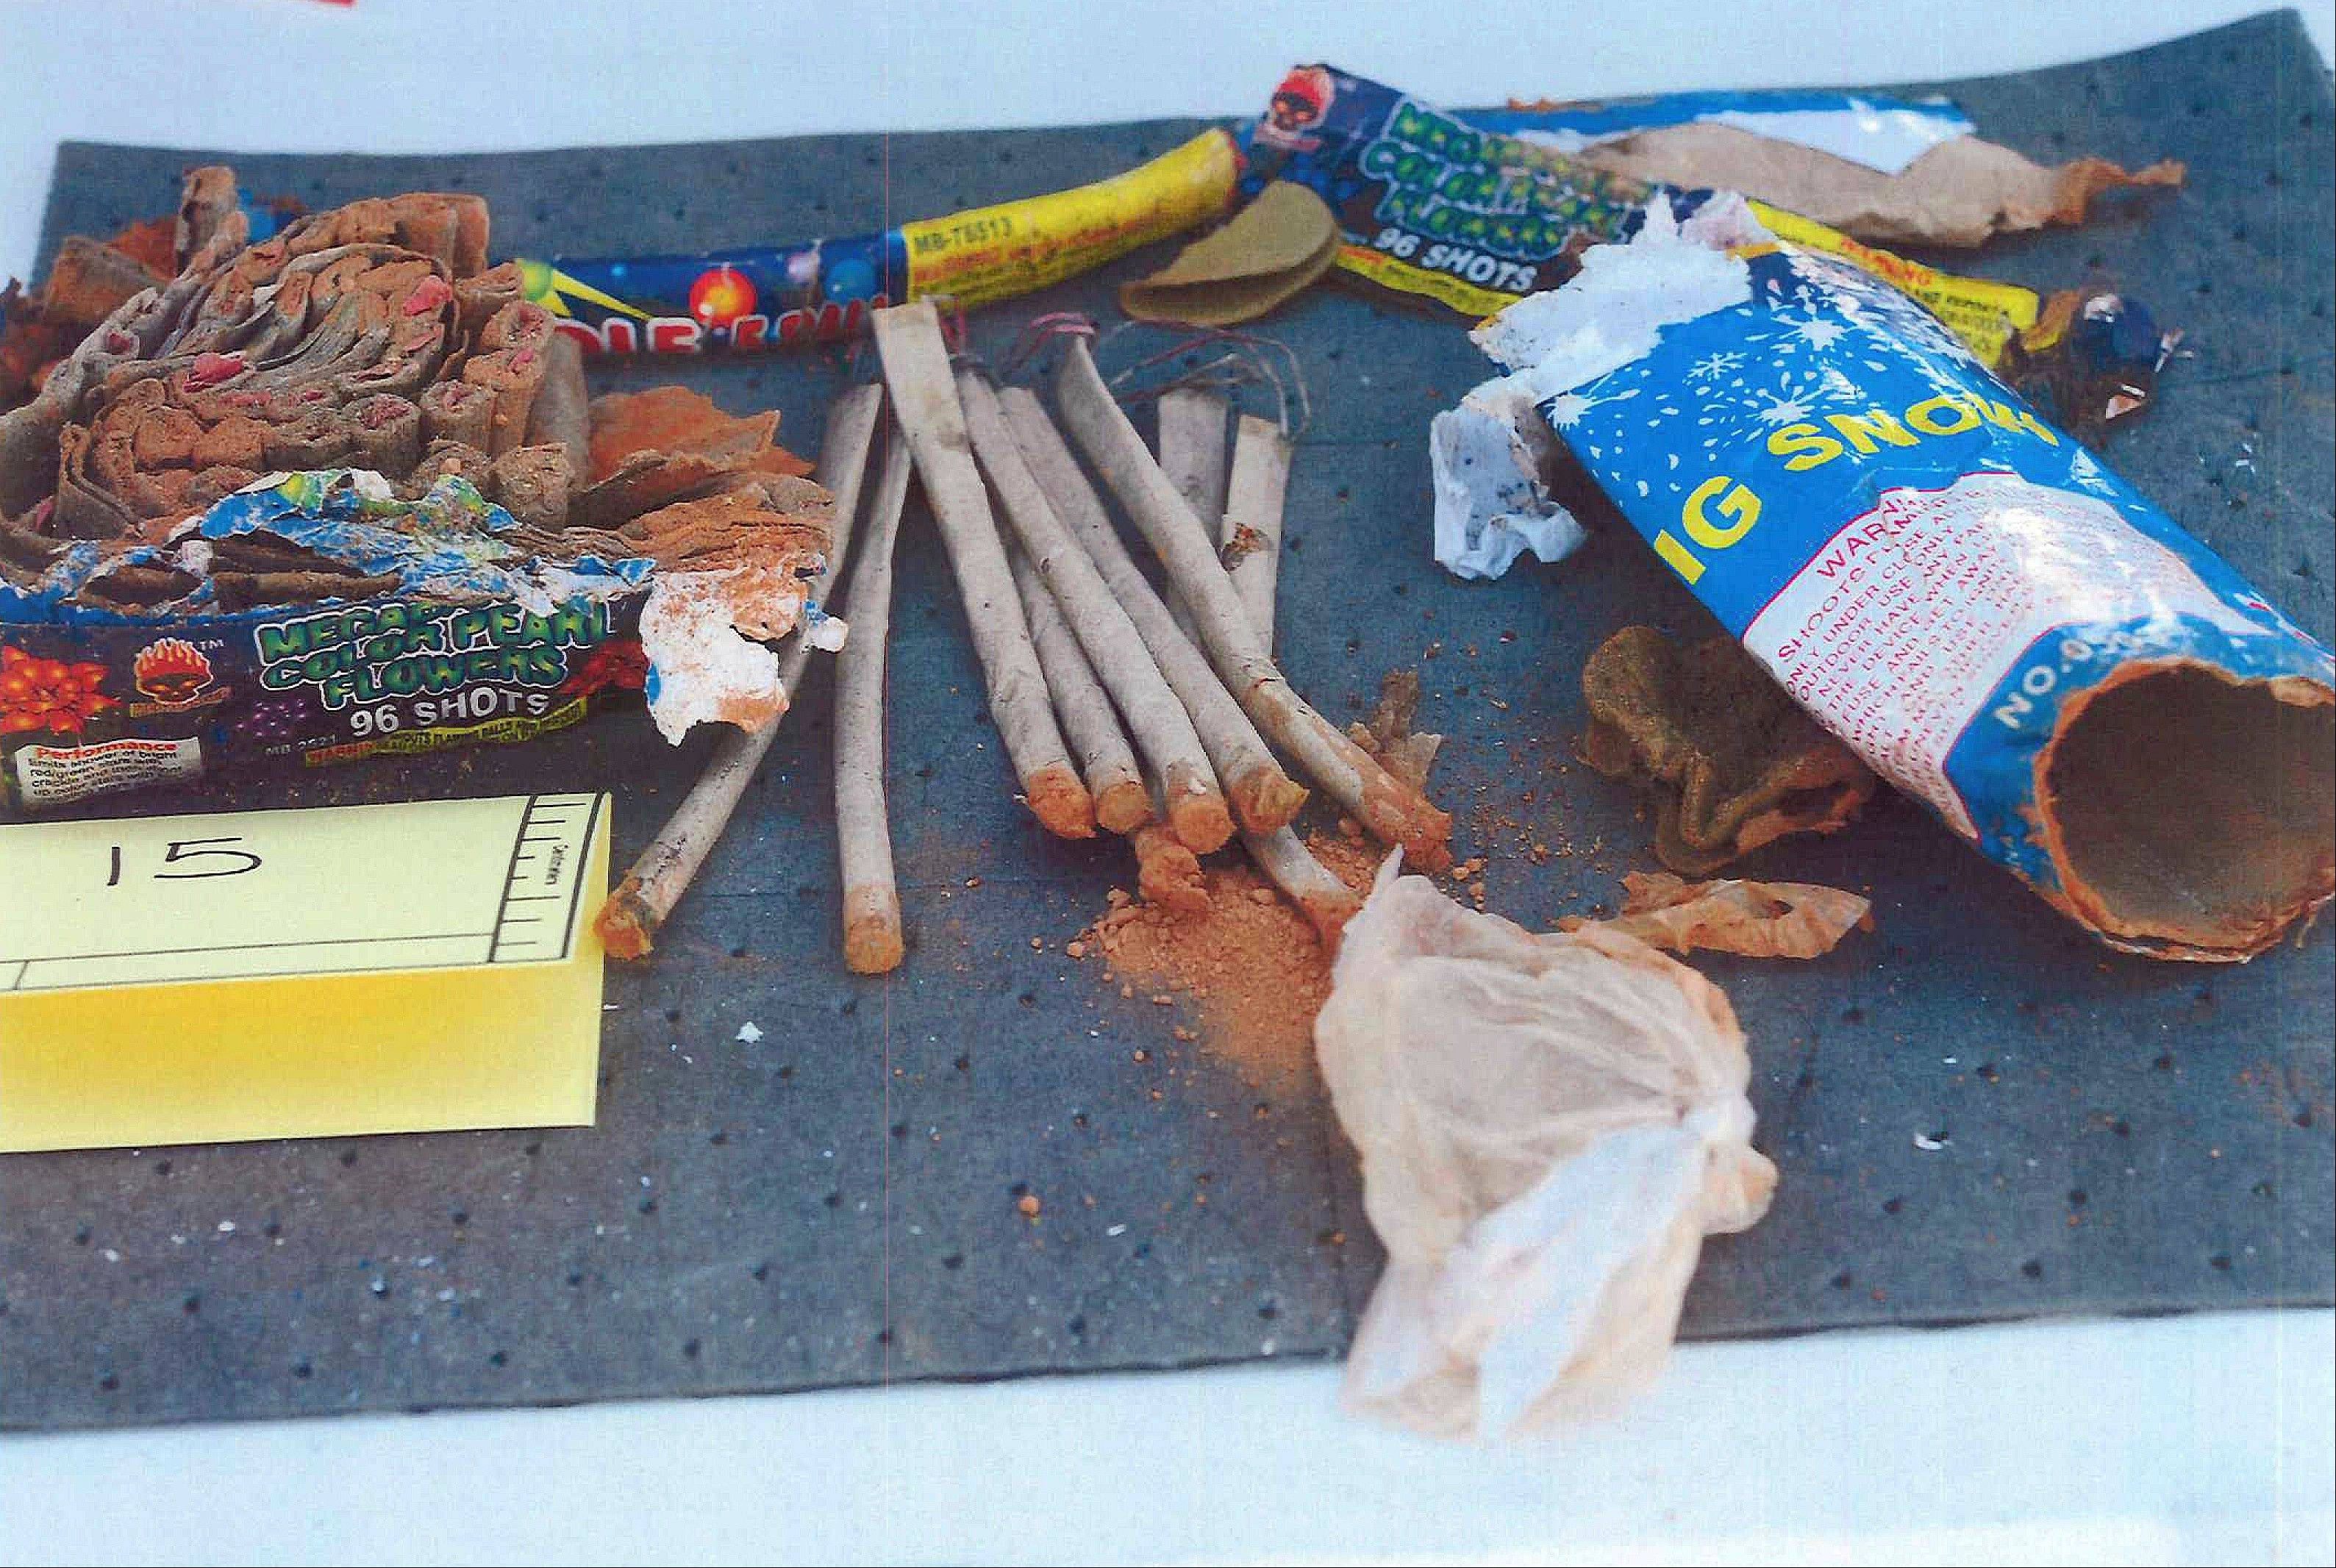 This photo released Wednesday by the U.S. Attorney�s office shows fireworks that the office says federal agents recovered from inside a backpack belonging to Boston Marathon bombing suspect Dzhokhar Tsarnaeva, found in a landfill in New Bedford, Mass.